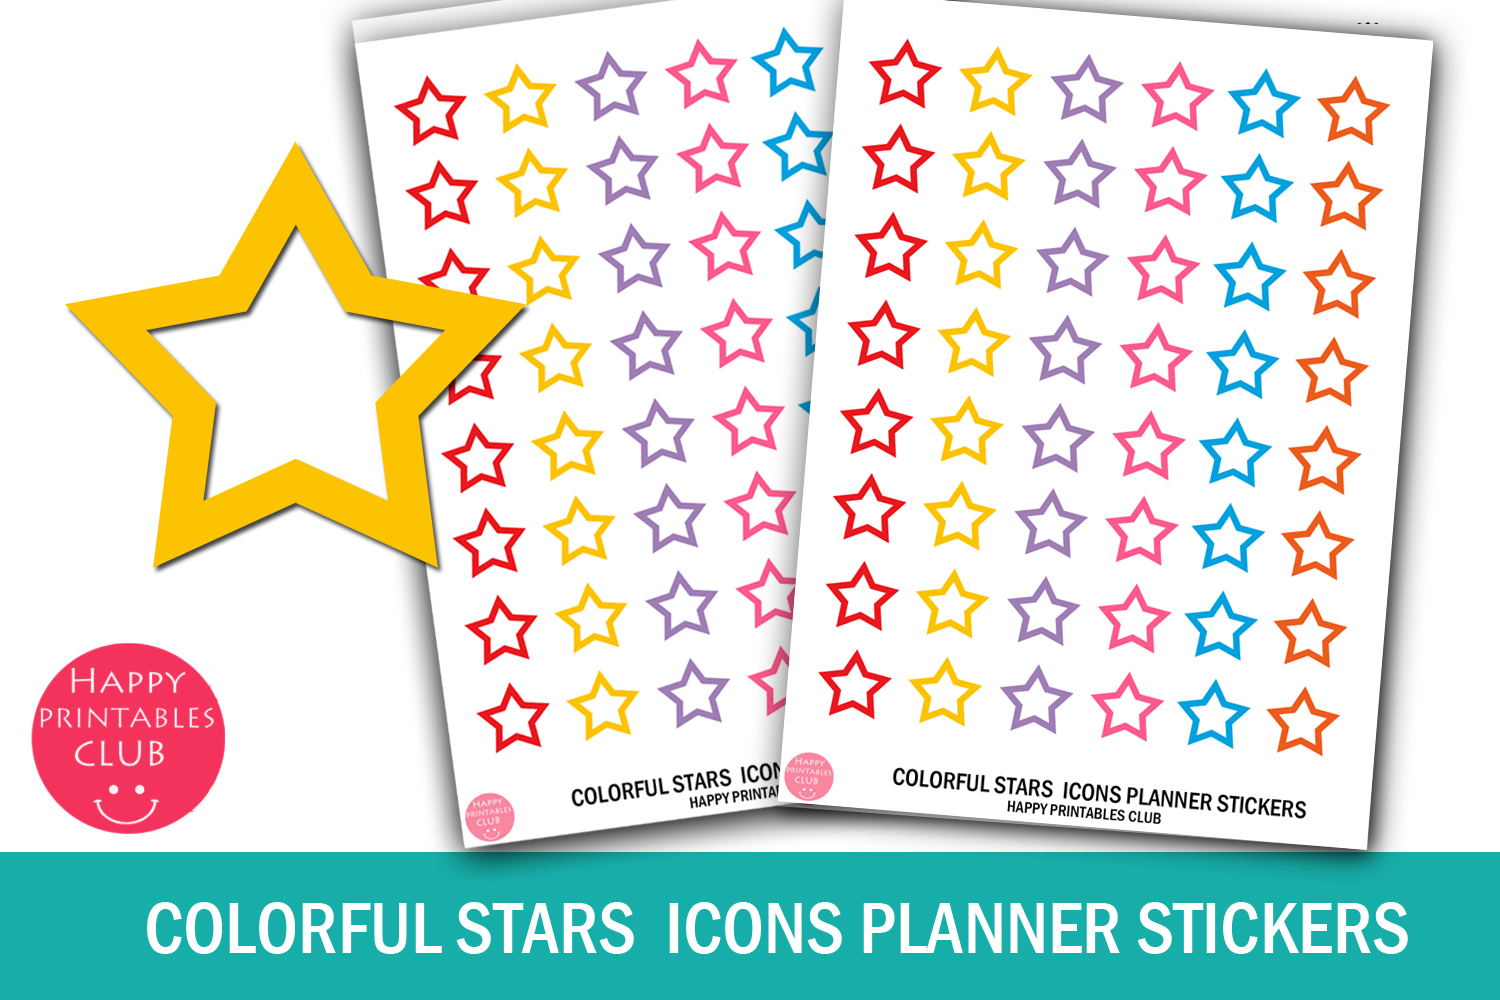 Colorful Stars Icons Planner Stickers- Stars Planner Sticker example image 1